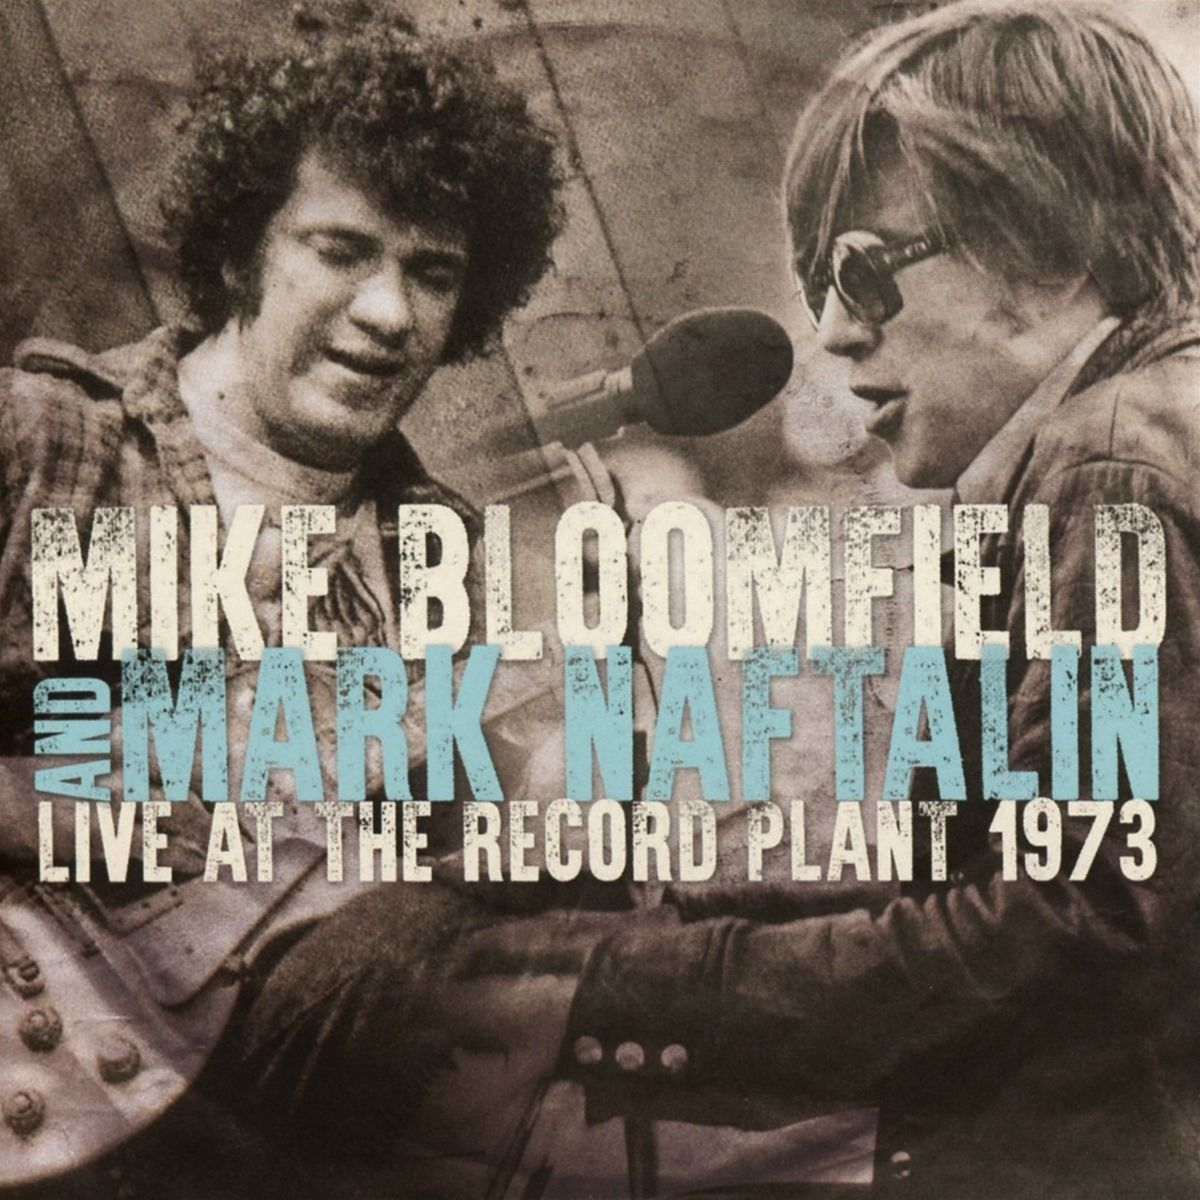 Live at the Record Plant, 1973